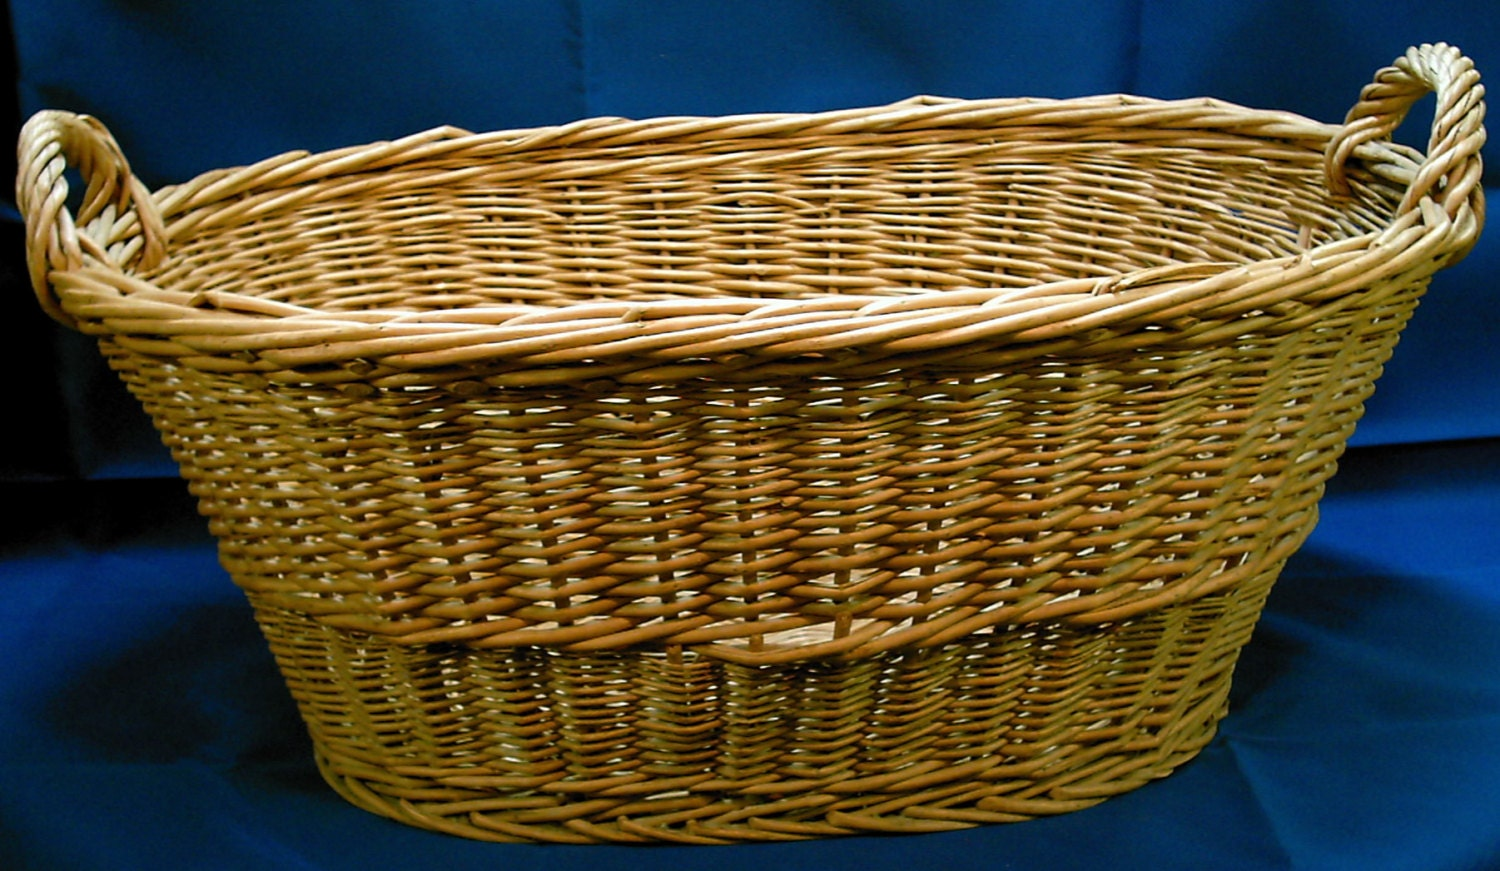 Large Wicker Basket Laundry Basket